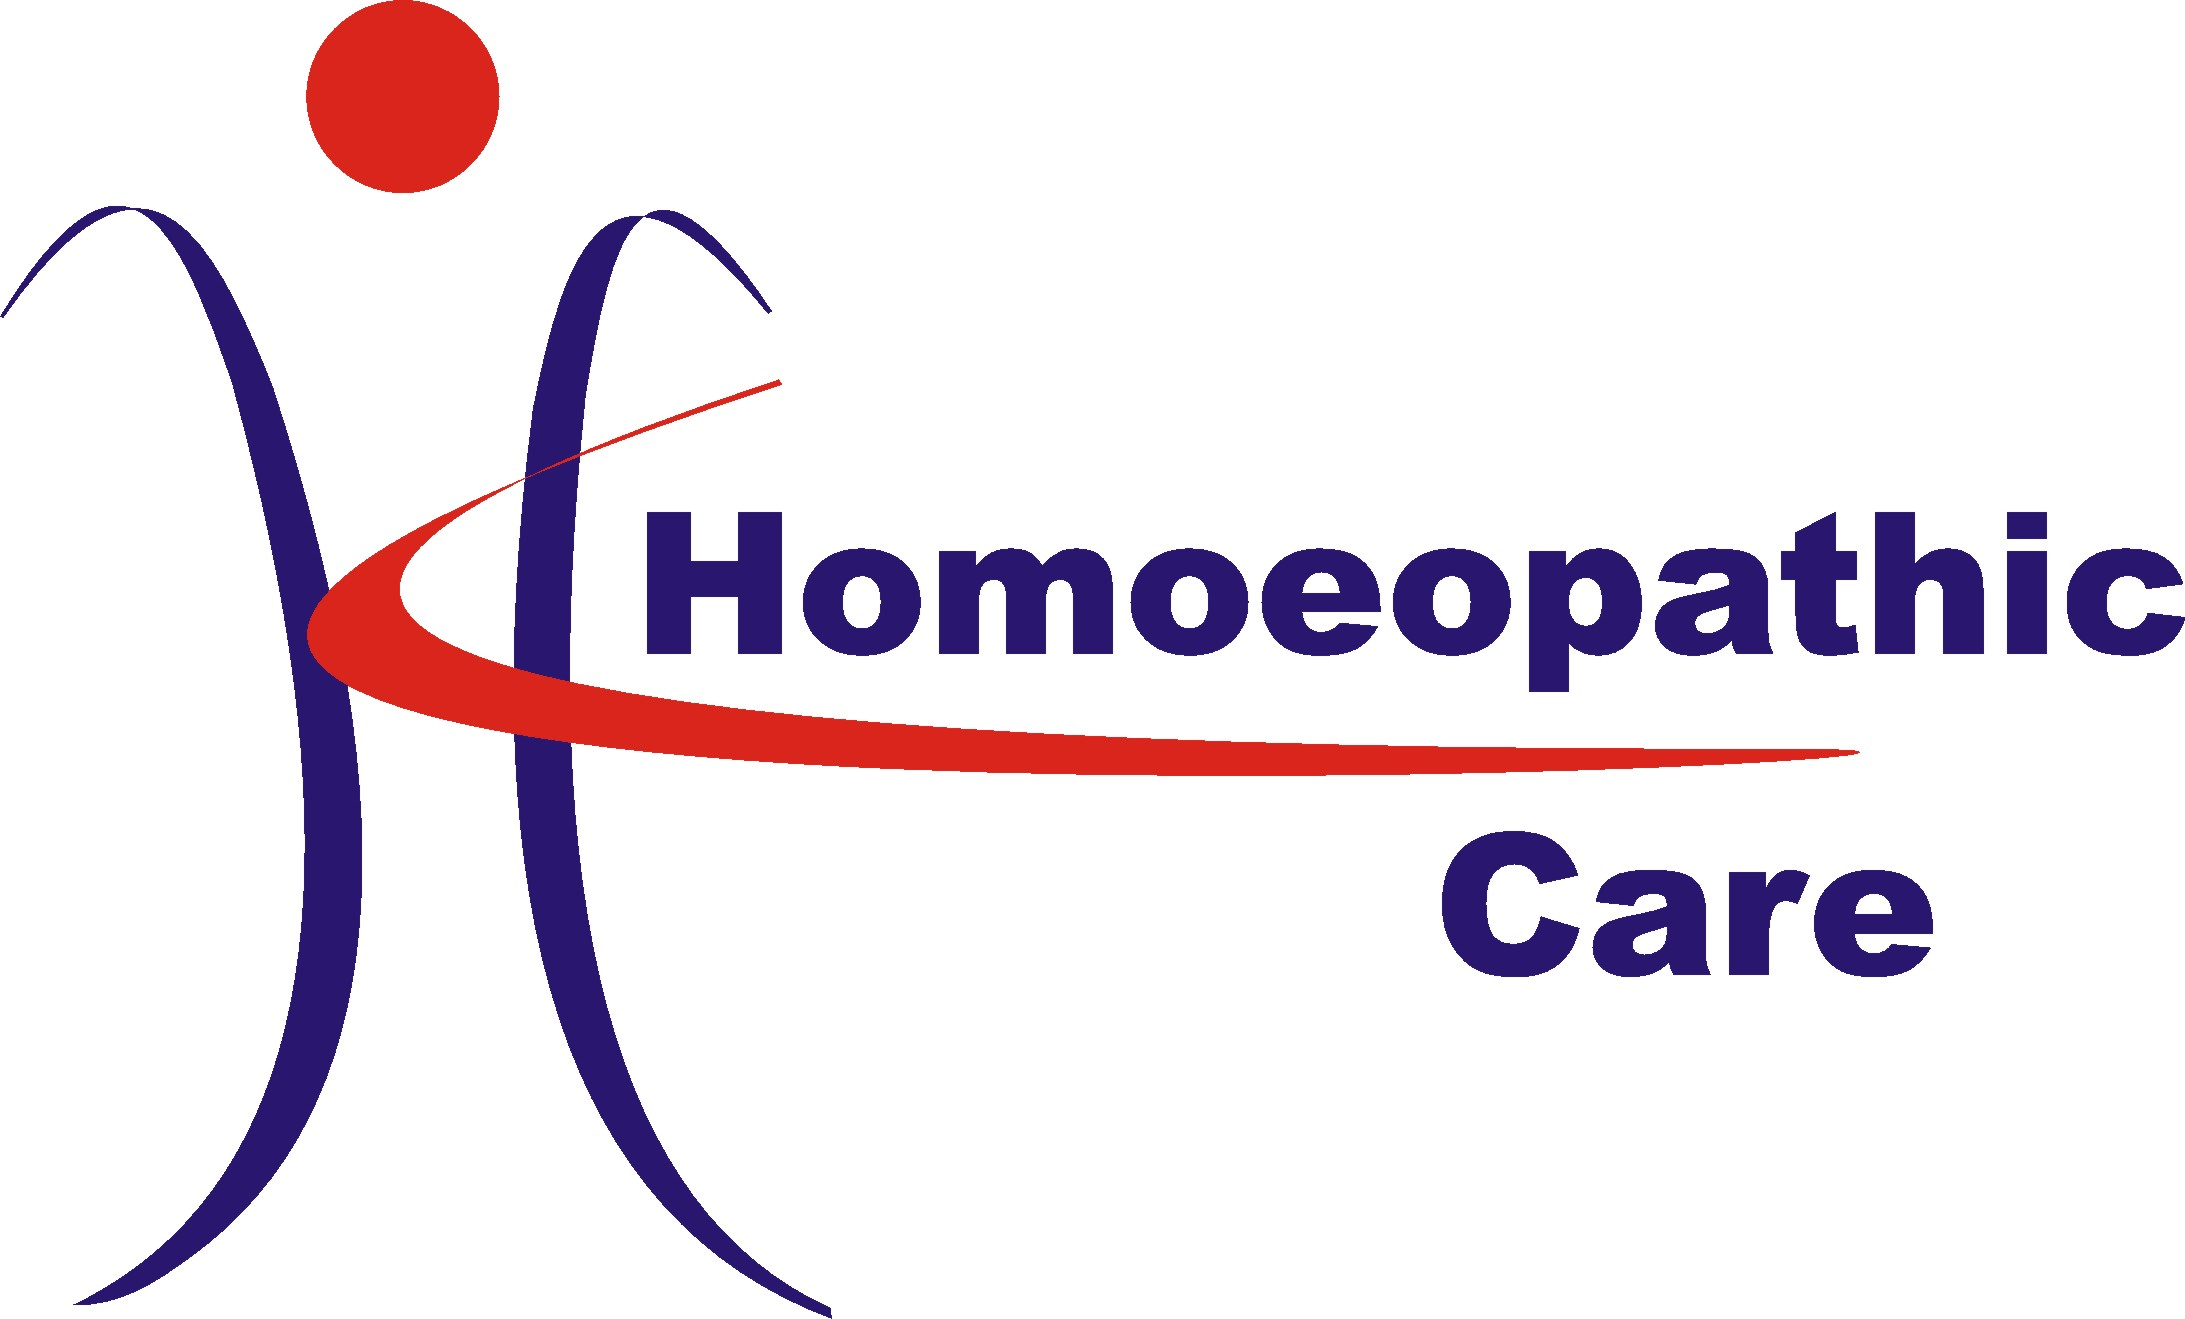 Homoeopathic Care